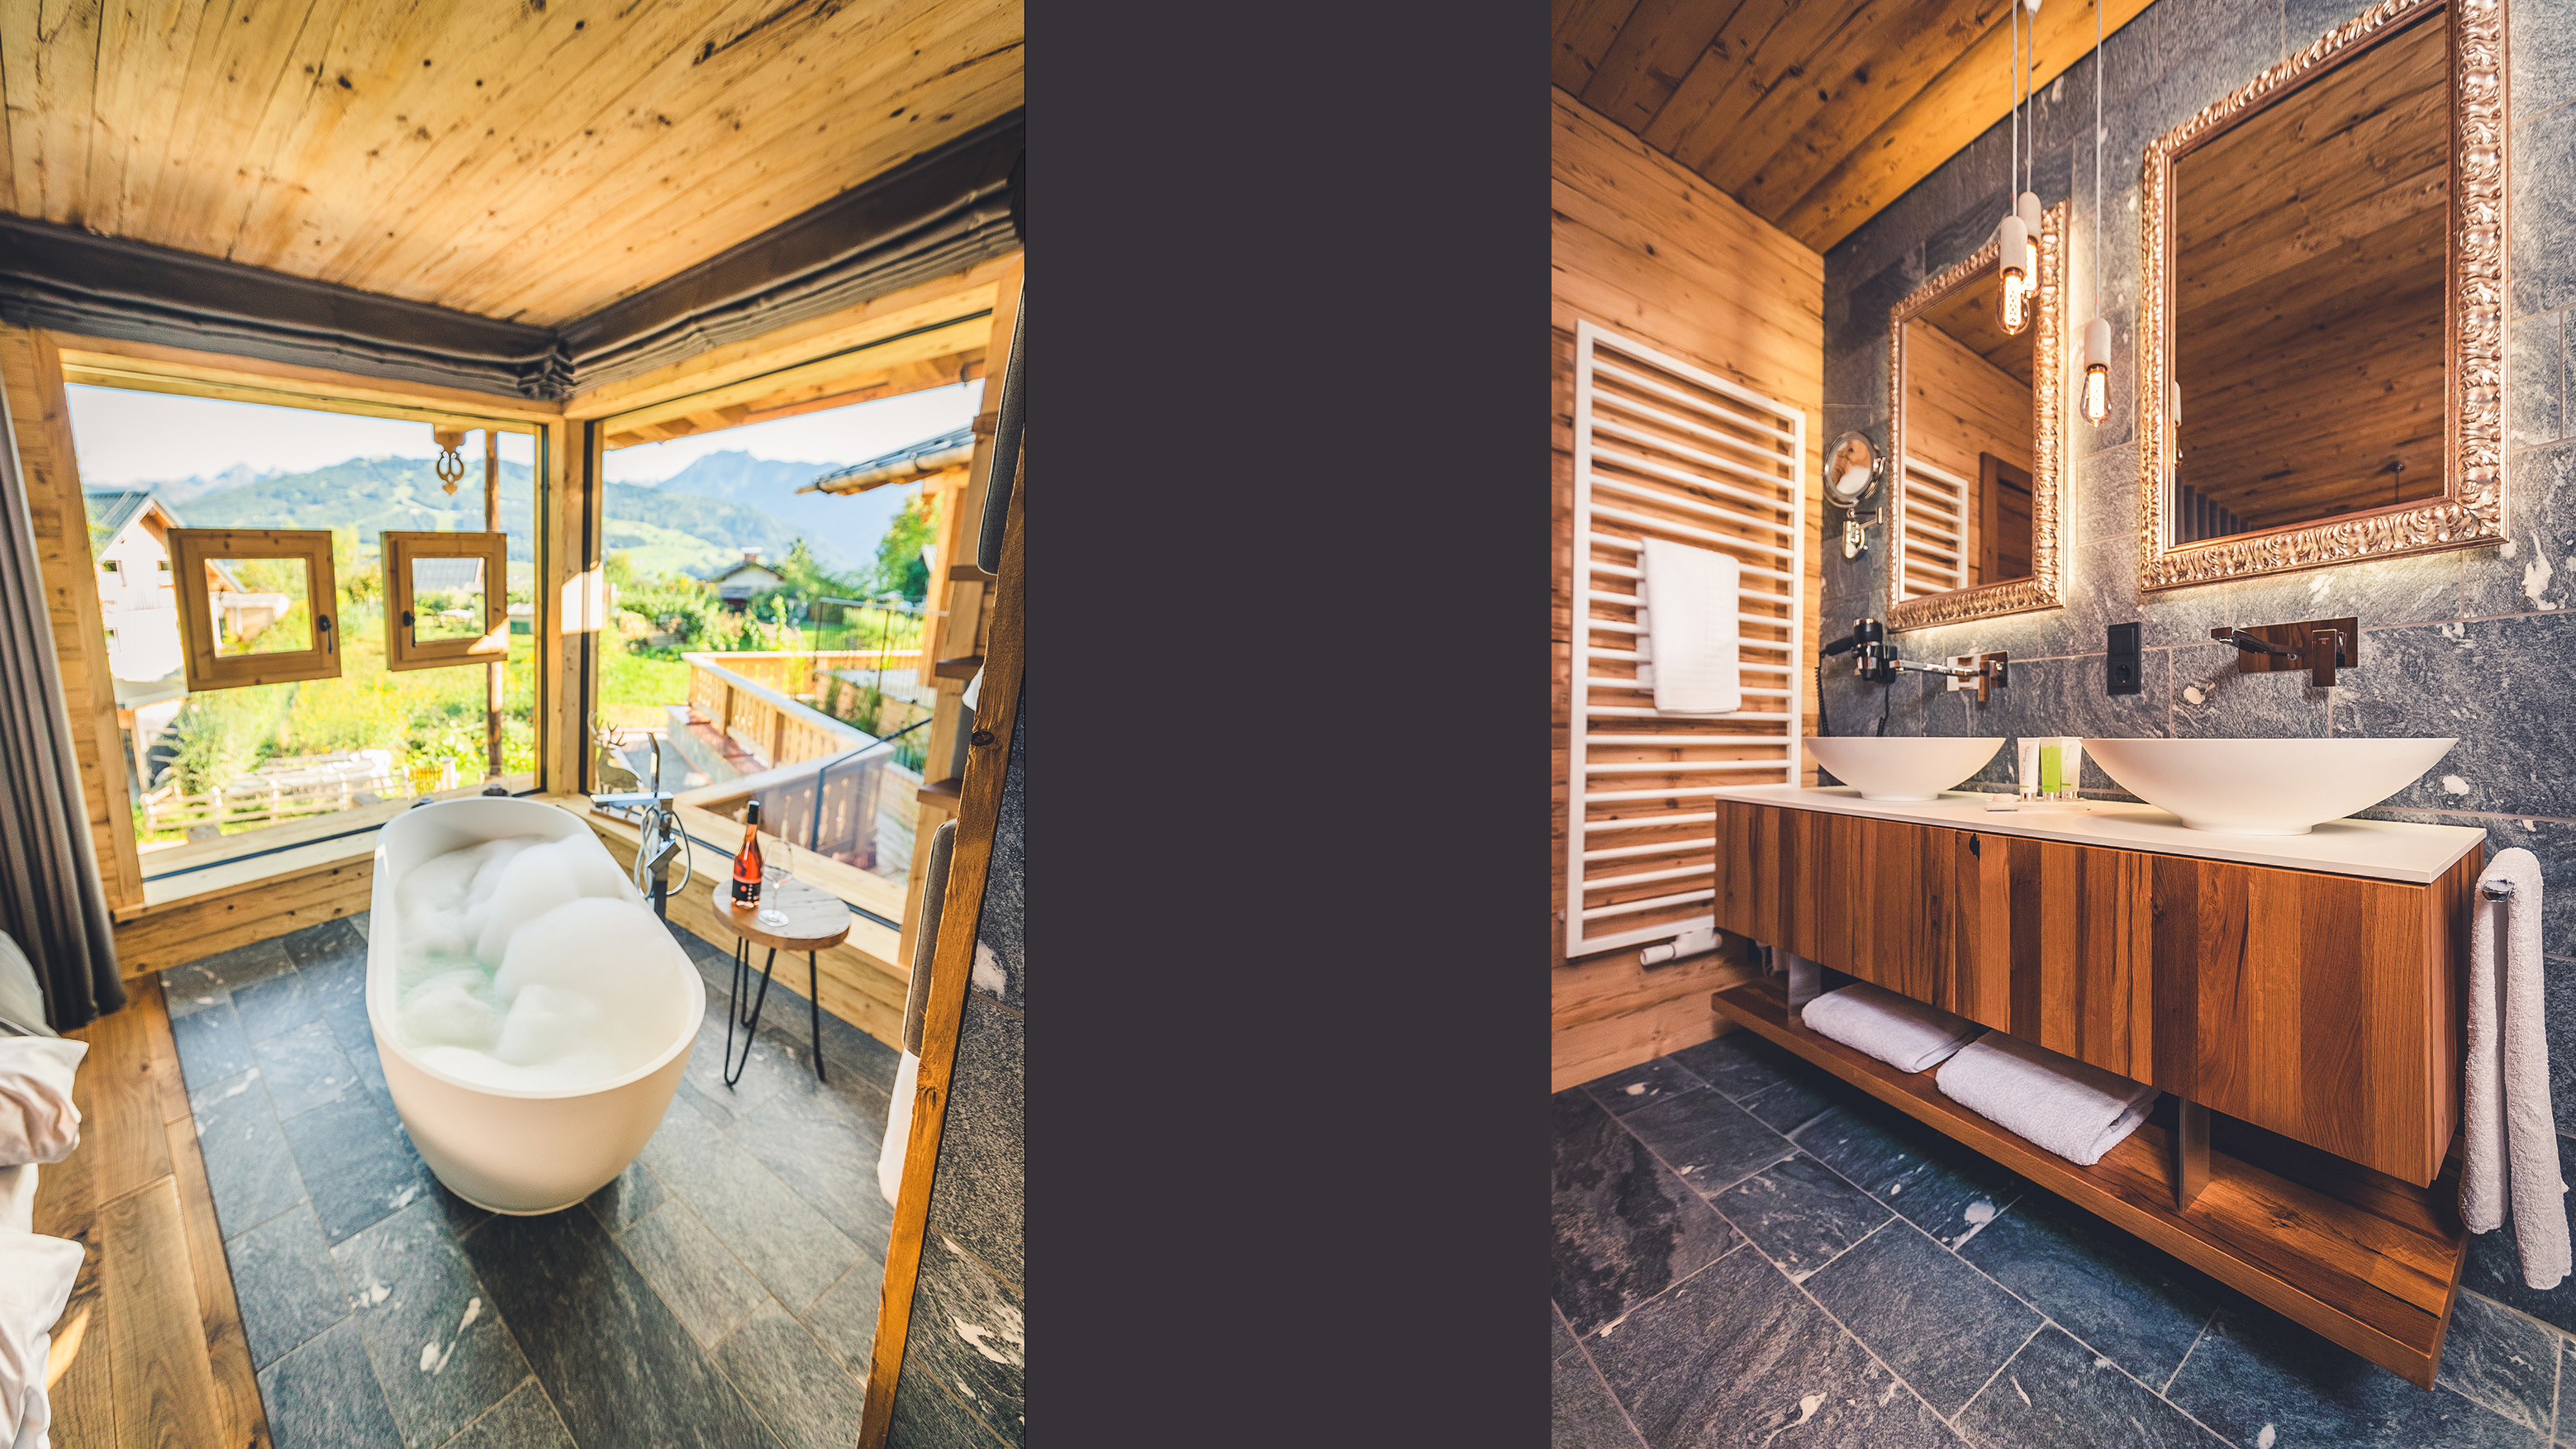 The Schladming Retreat Chalet, Austria